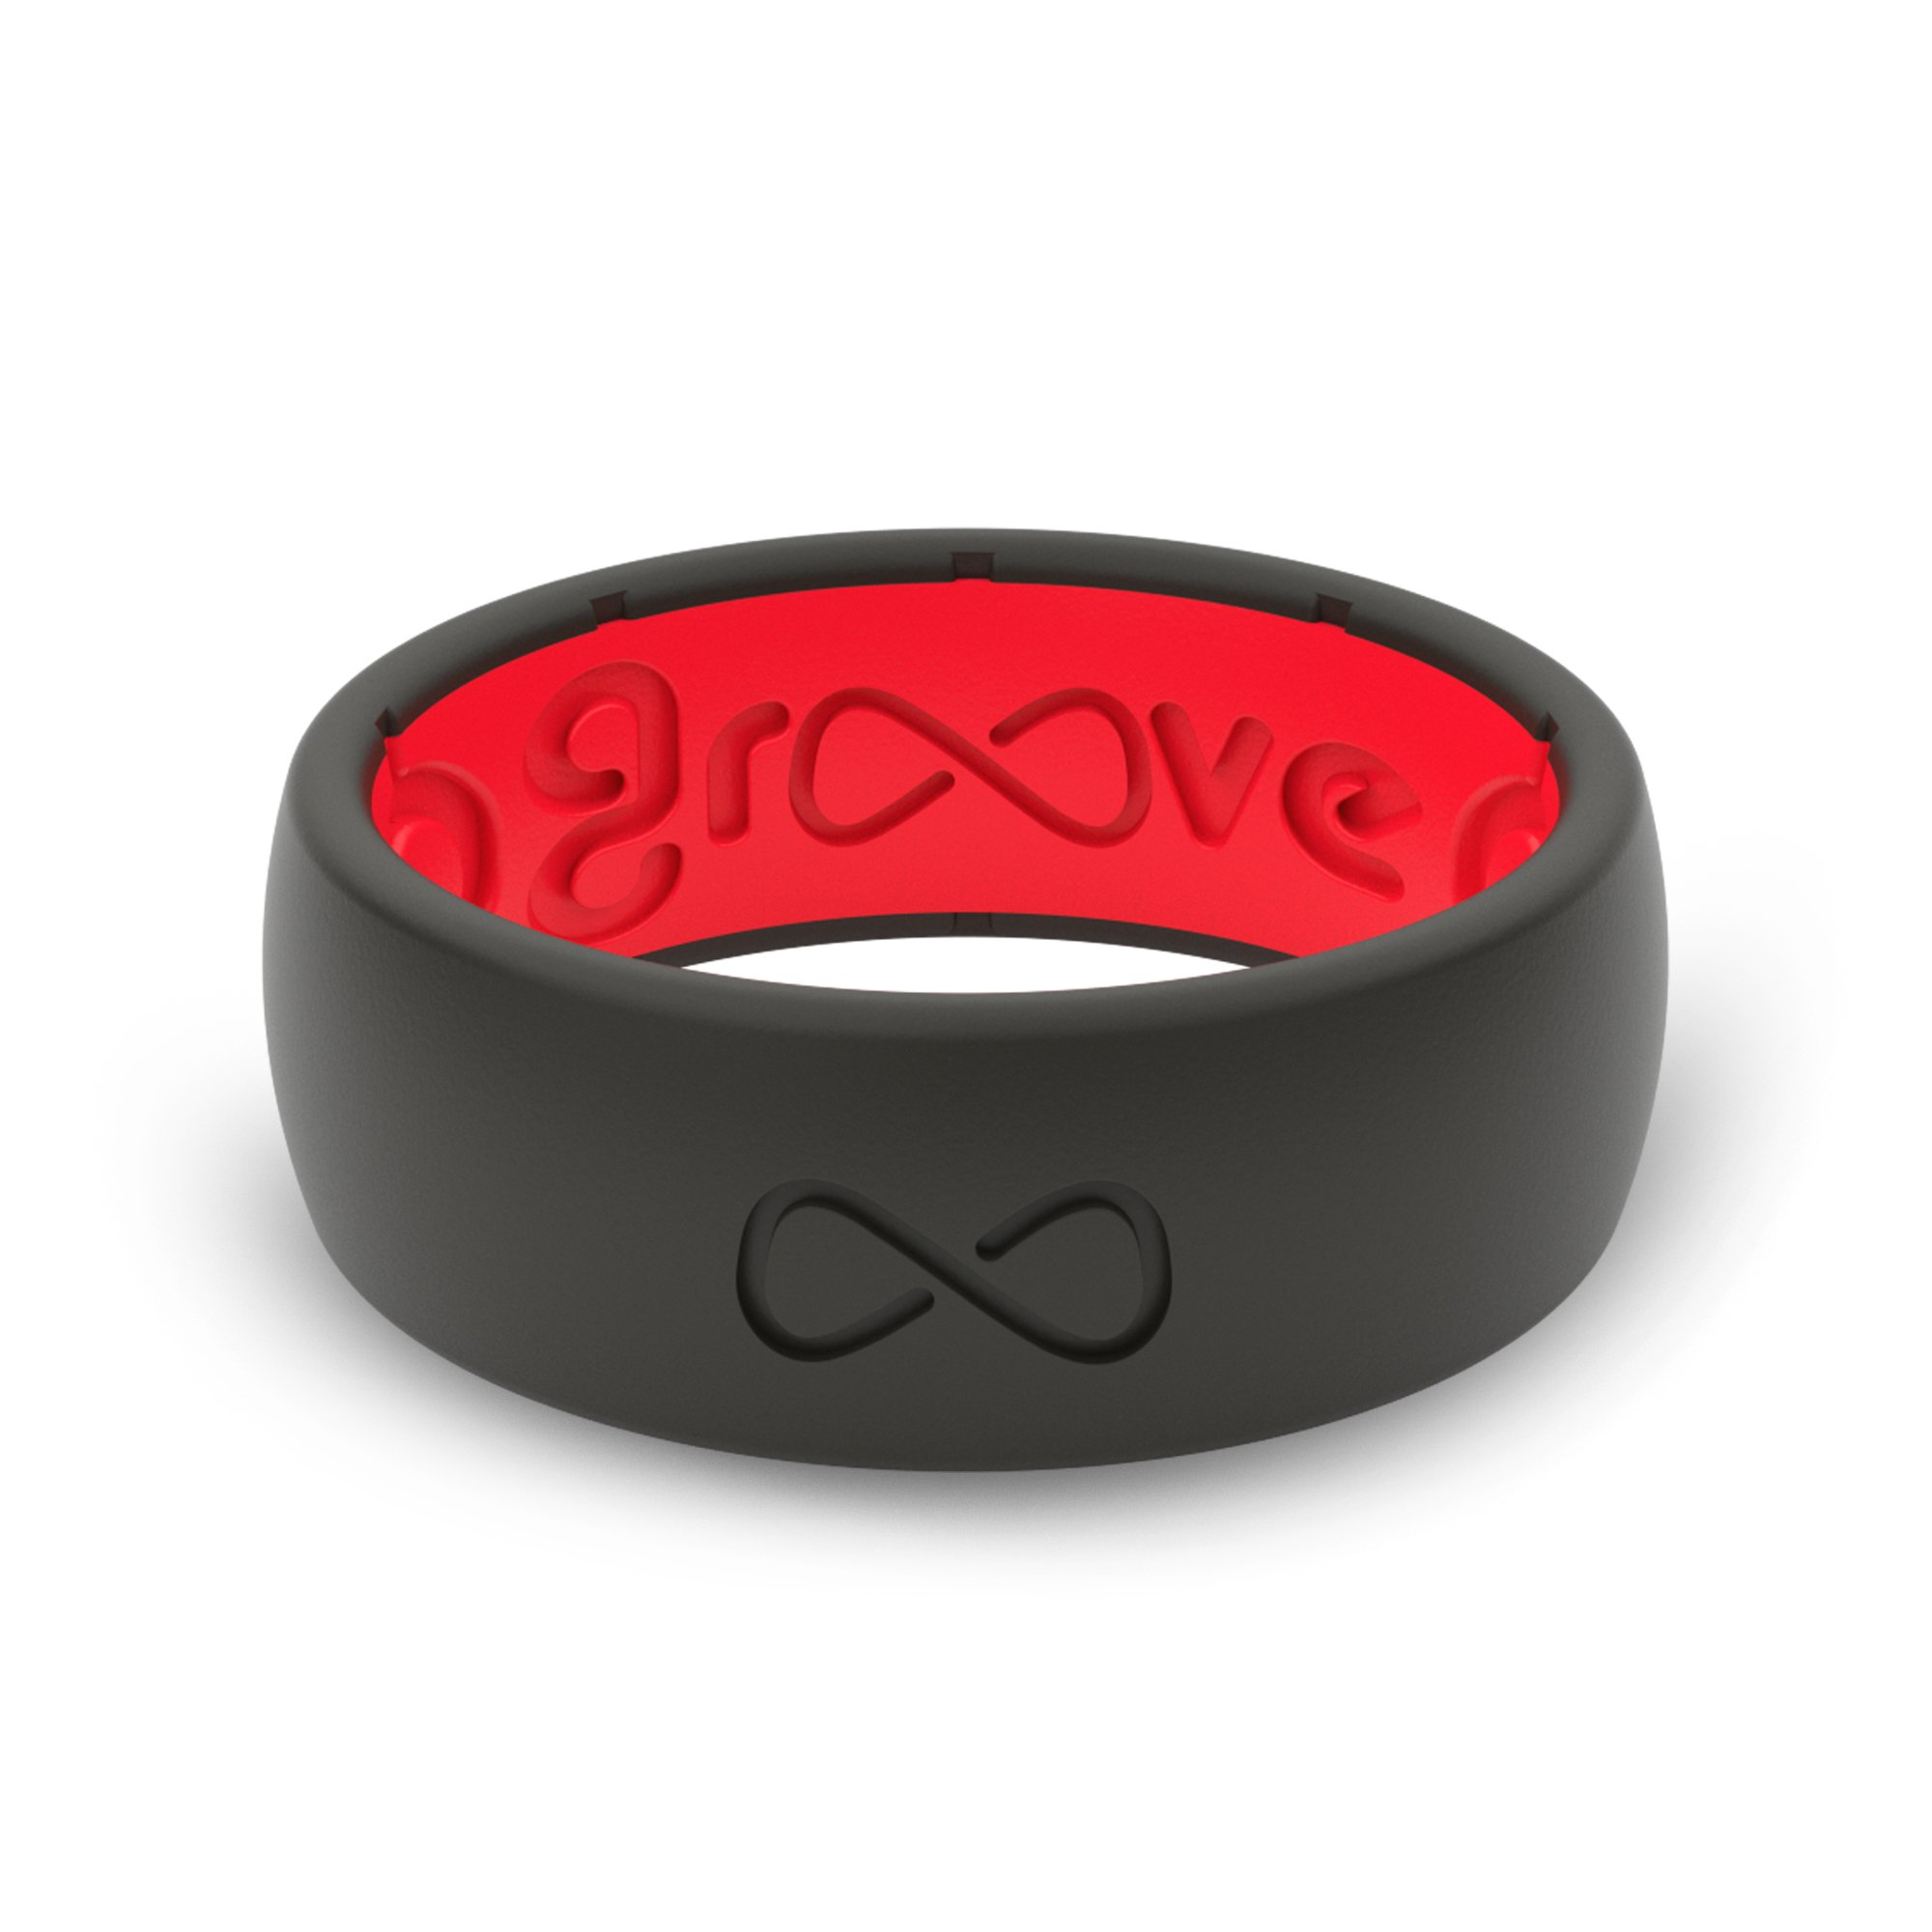 Groove Life - Groove Ring The World's First Breathable Silicone Ring Original (Midnight Black/Raspberry Red) (Size 7)